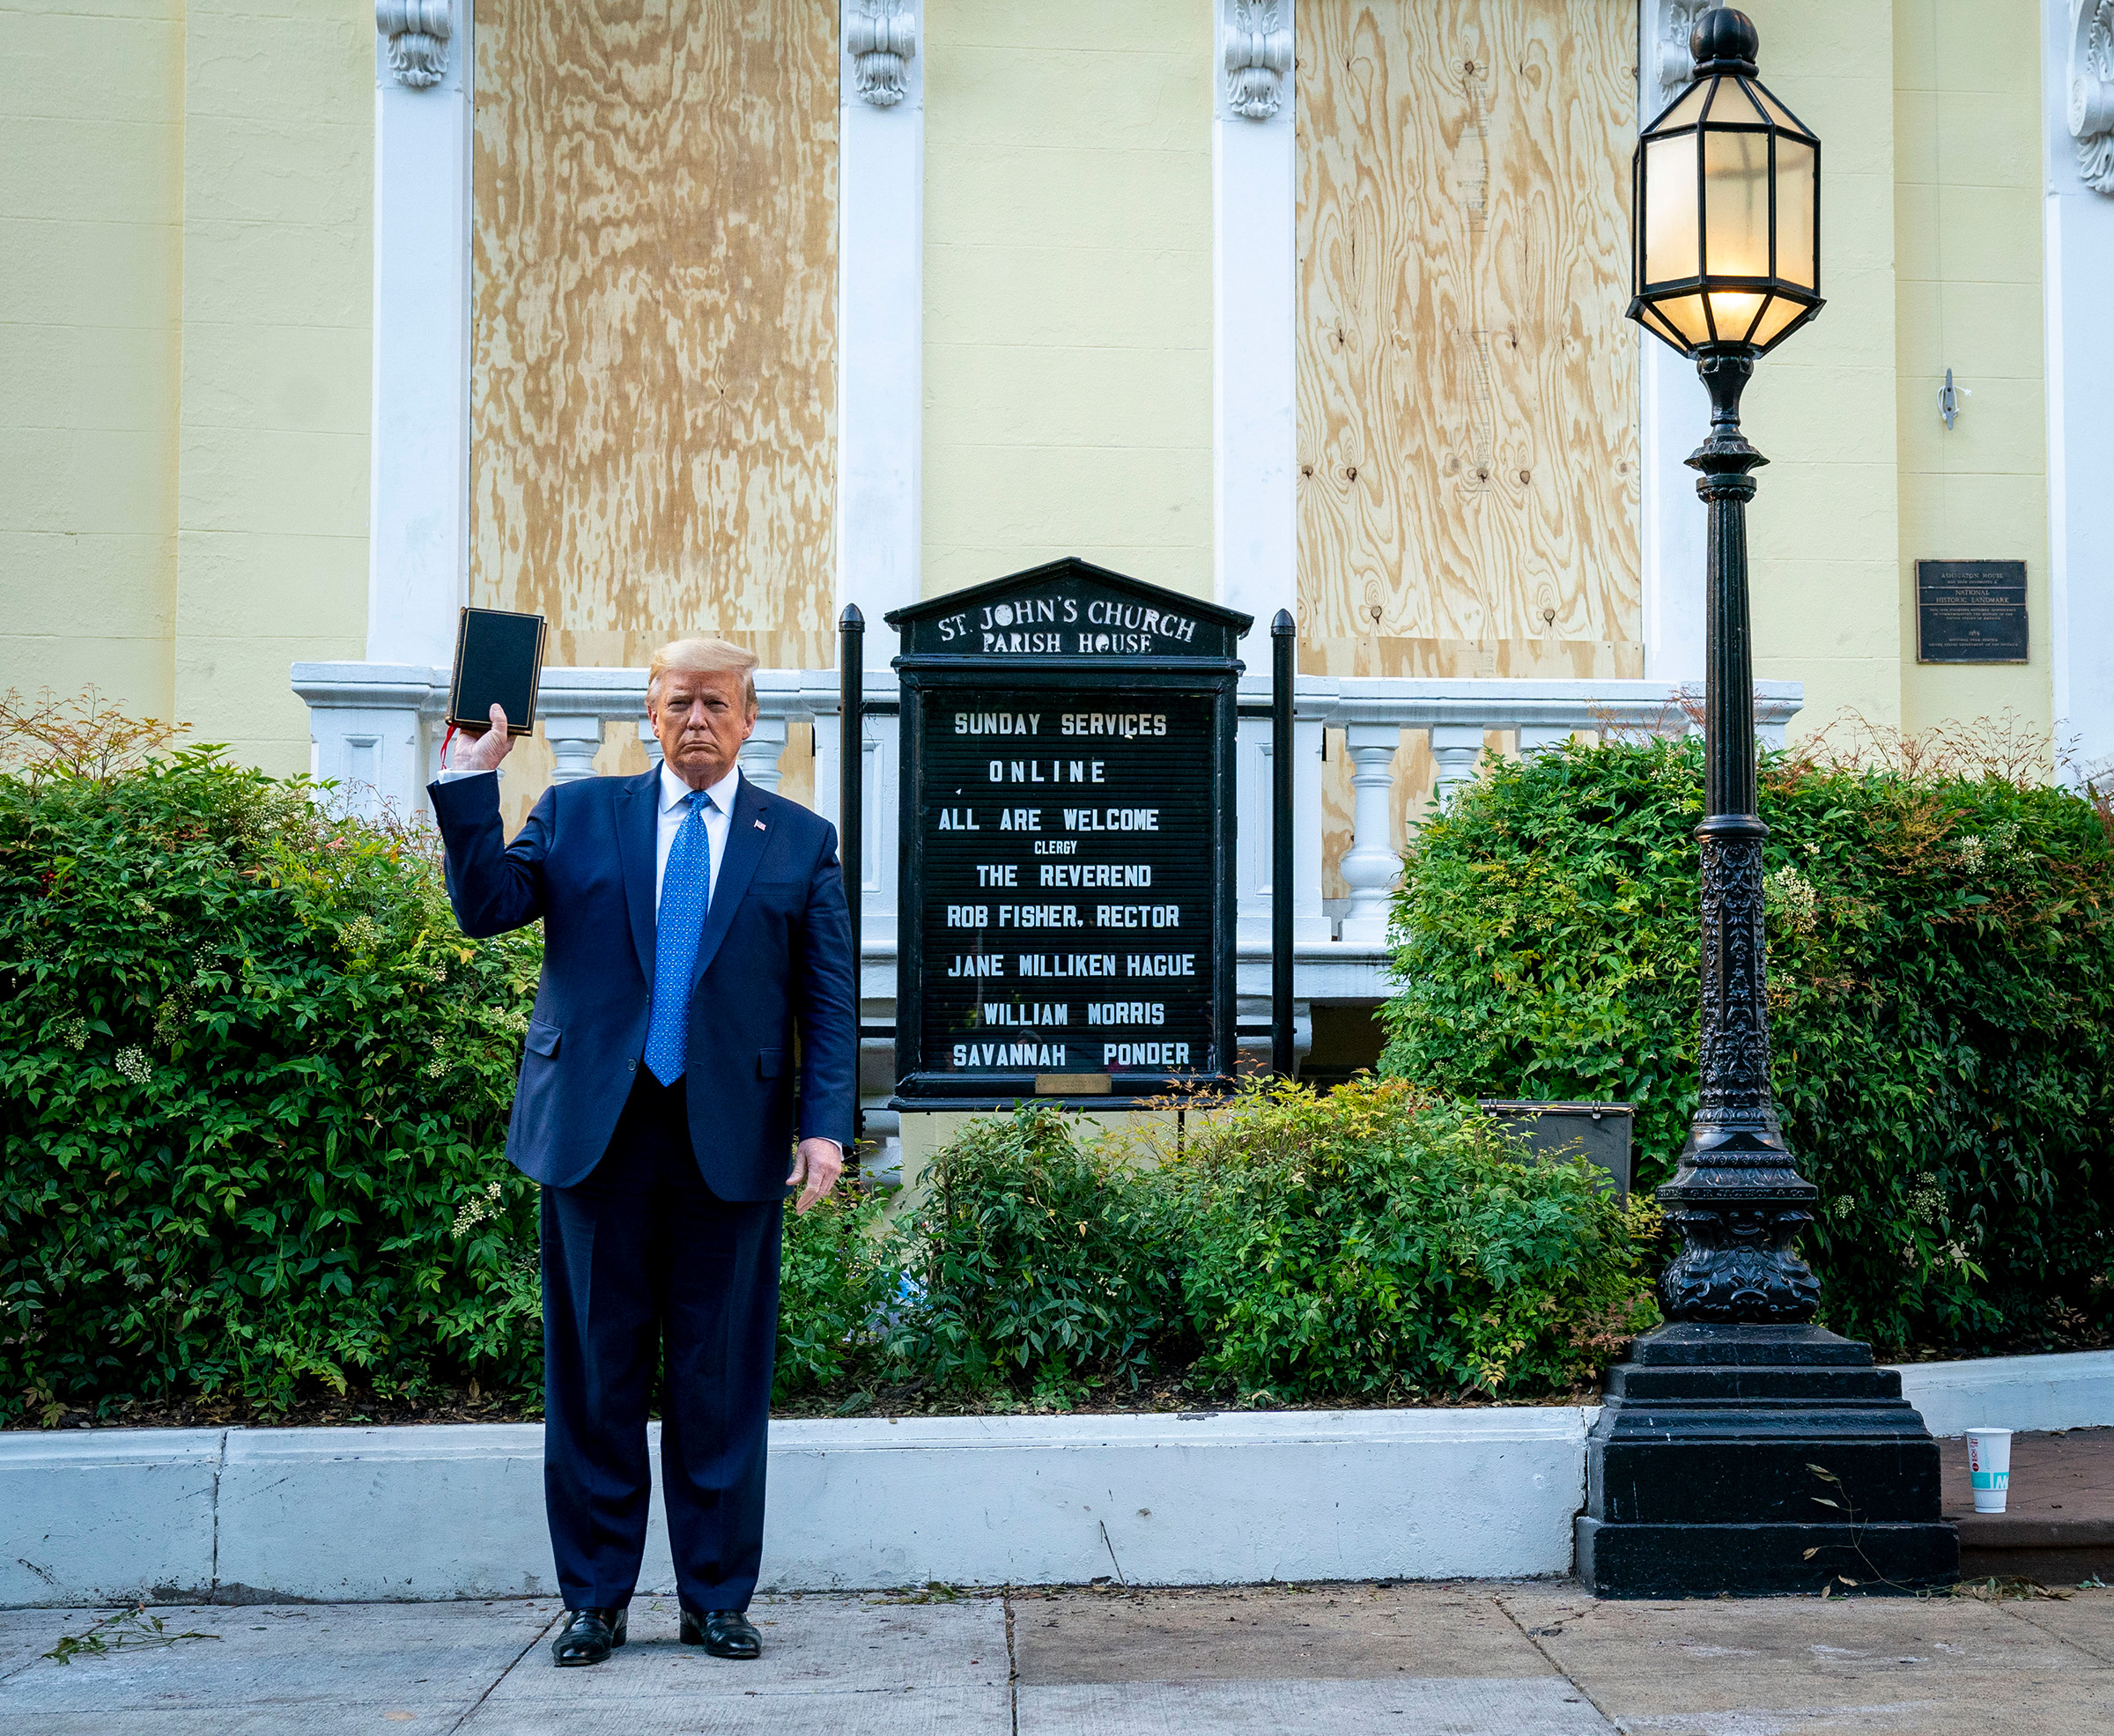 President Trump holds a Bible in front of St. John's Church in Washington, D.C., on June 1, 2020.